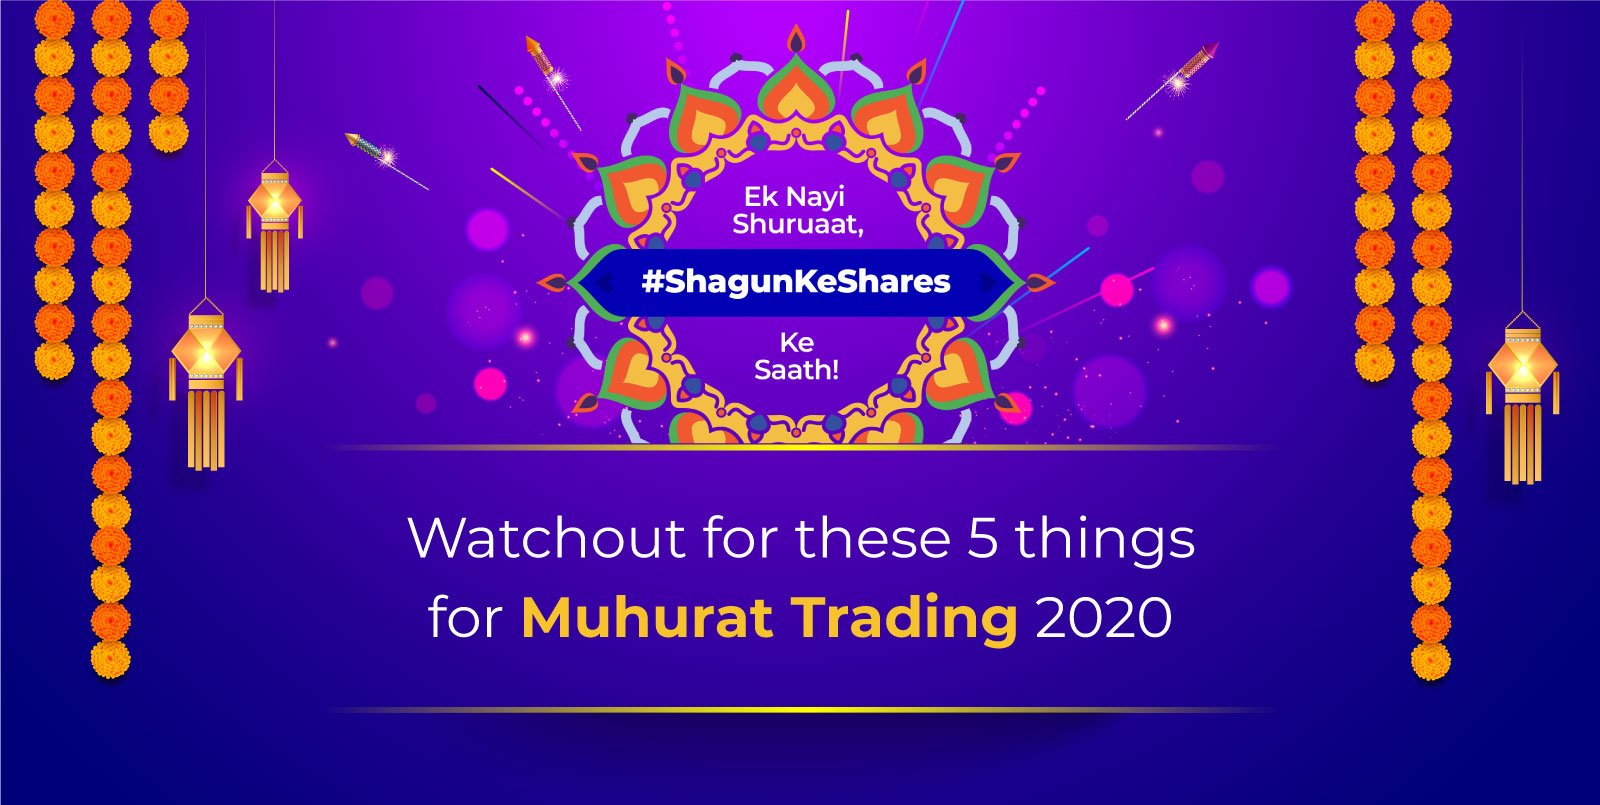 Watch out for these 5 things for Muhurat Trading in 2020